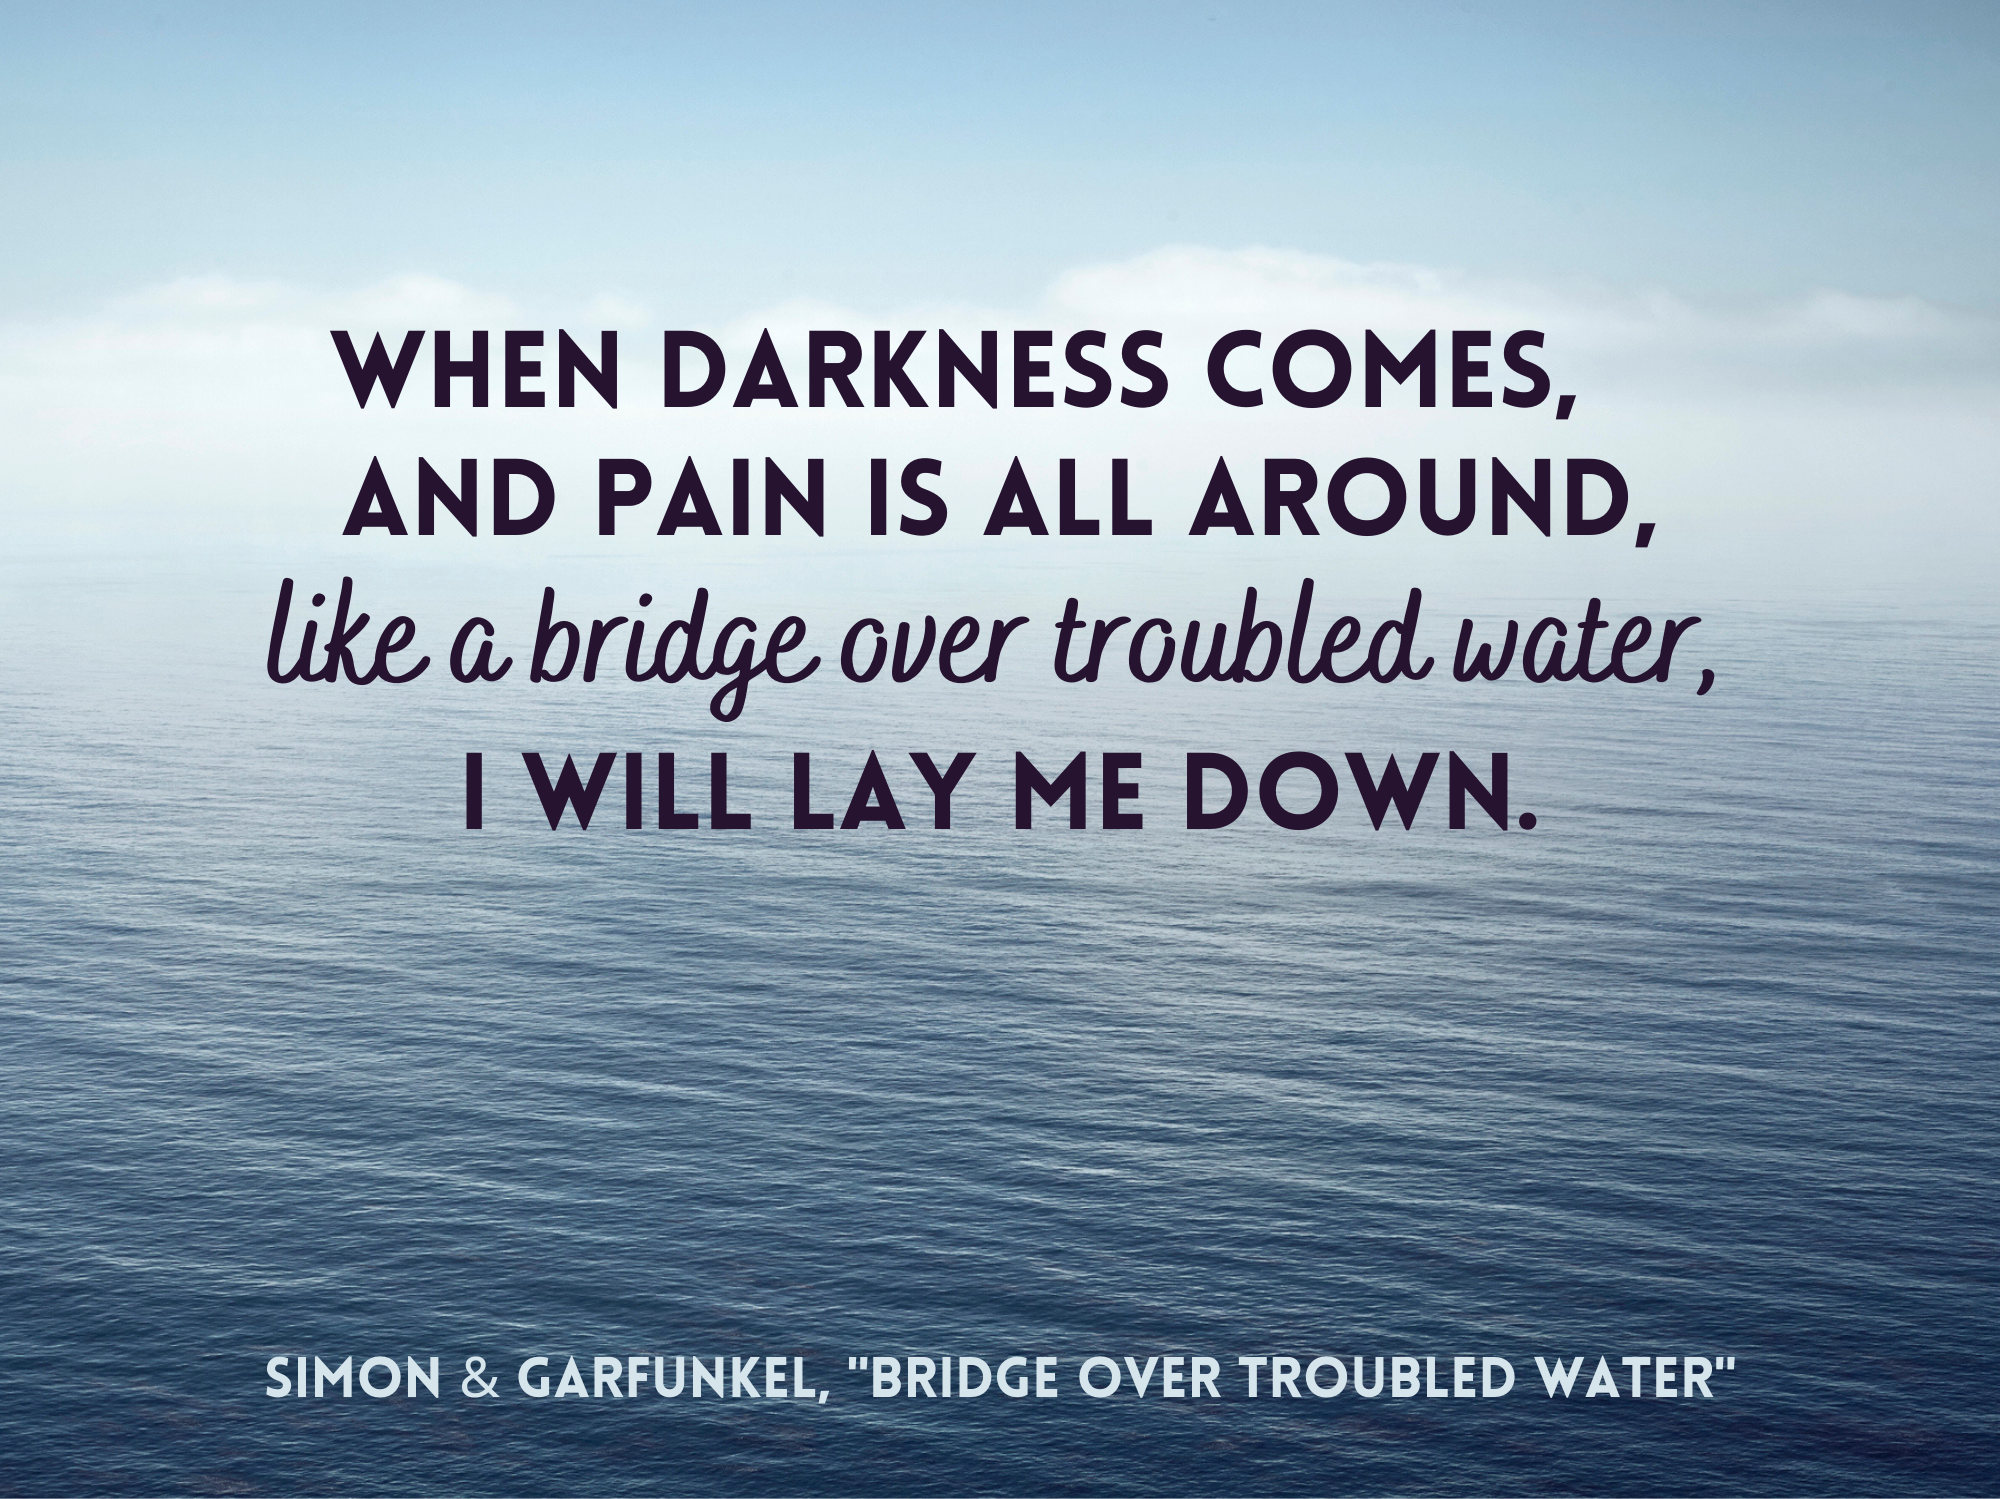 """""""When darkness comes, and pain is all around, like a bridge over troubled water, I will lay me down"""" by Simon and Garfunkel over the ocean"""